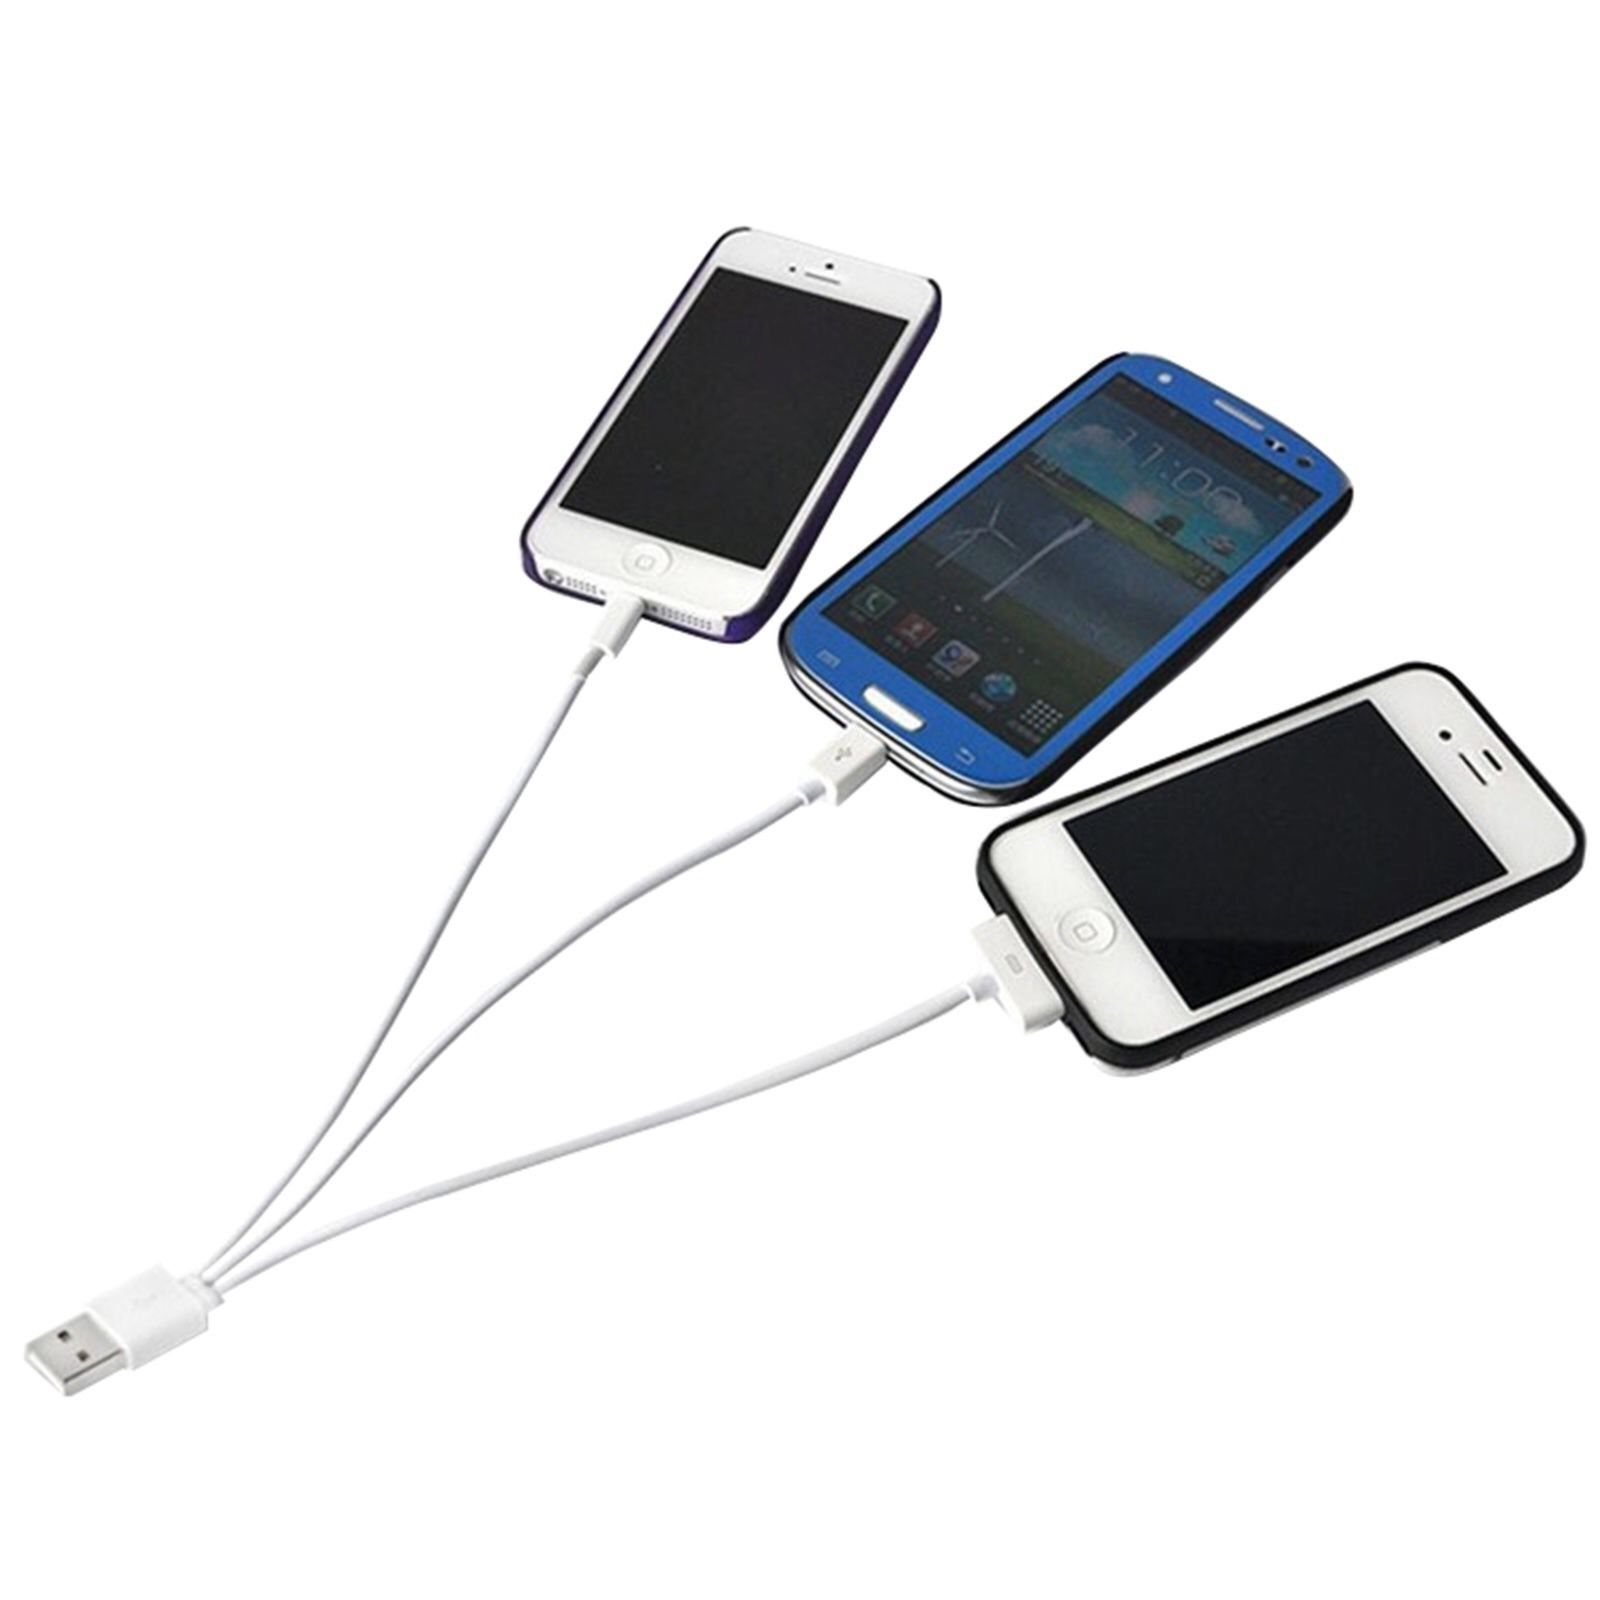 New 3 in 1 USB Charging & Data Sync Cable For Android iPhone HTC A4